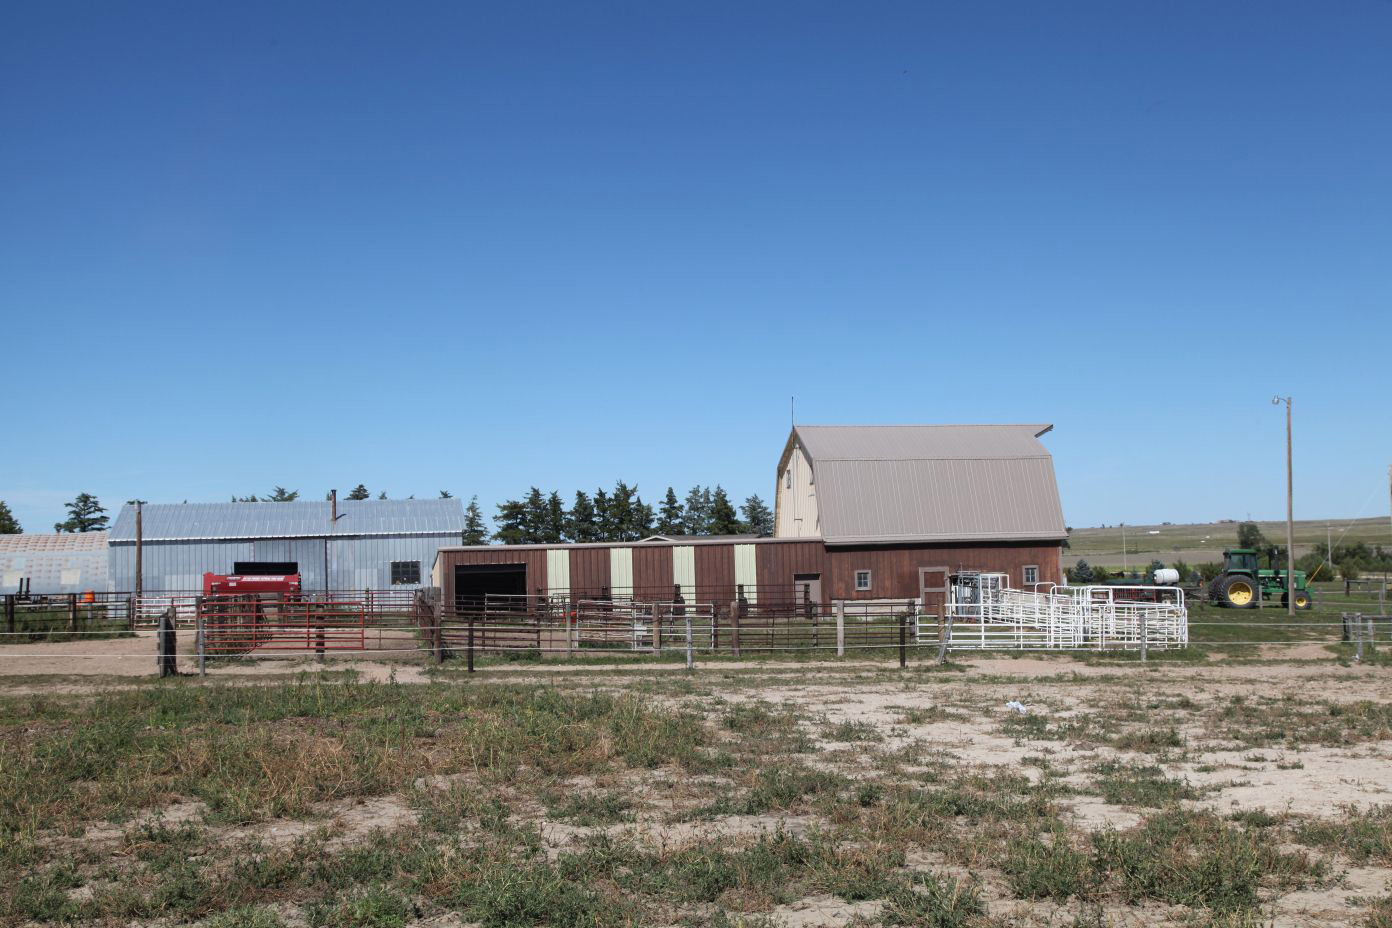 View-of-barn-from-S-to-N.jpg